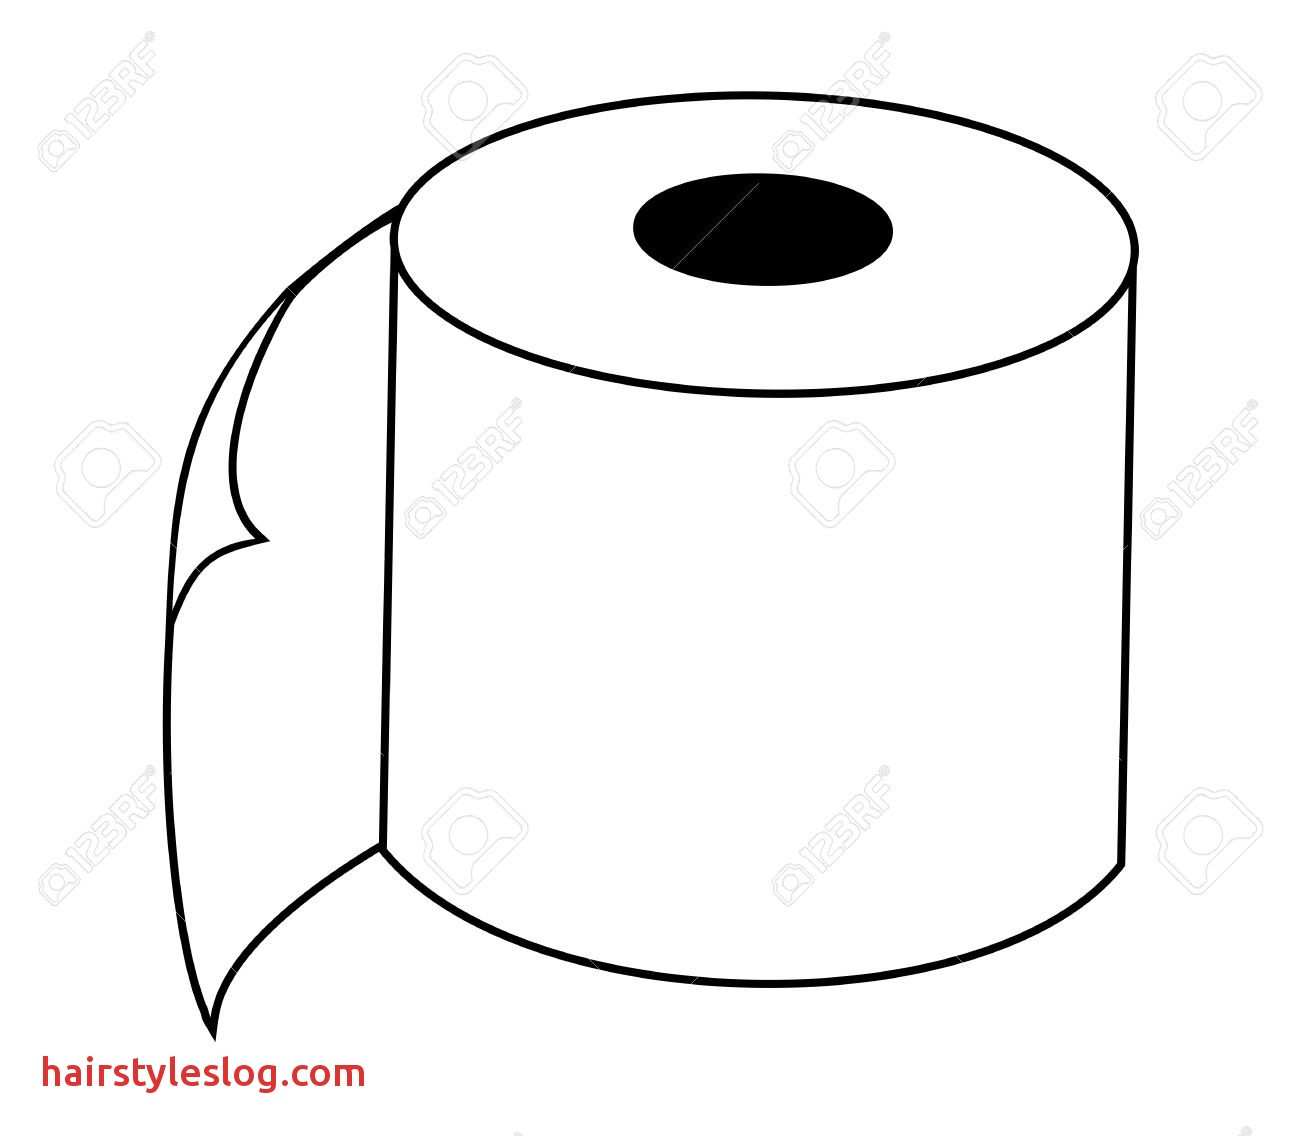 1300x1136 classic toilet paper drawing vector intended for warm need toilet